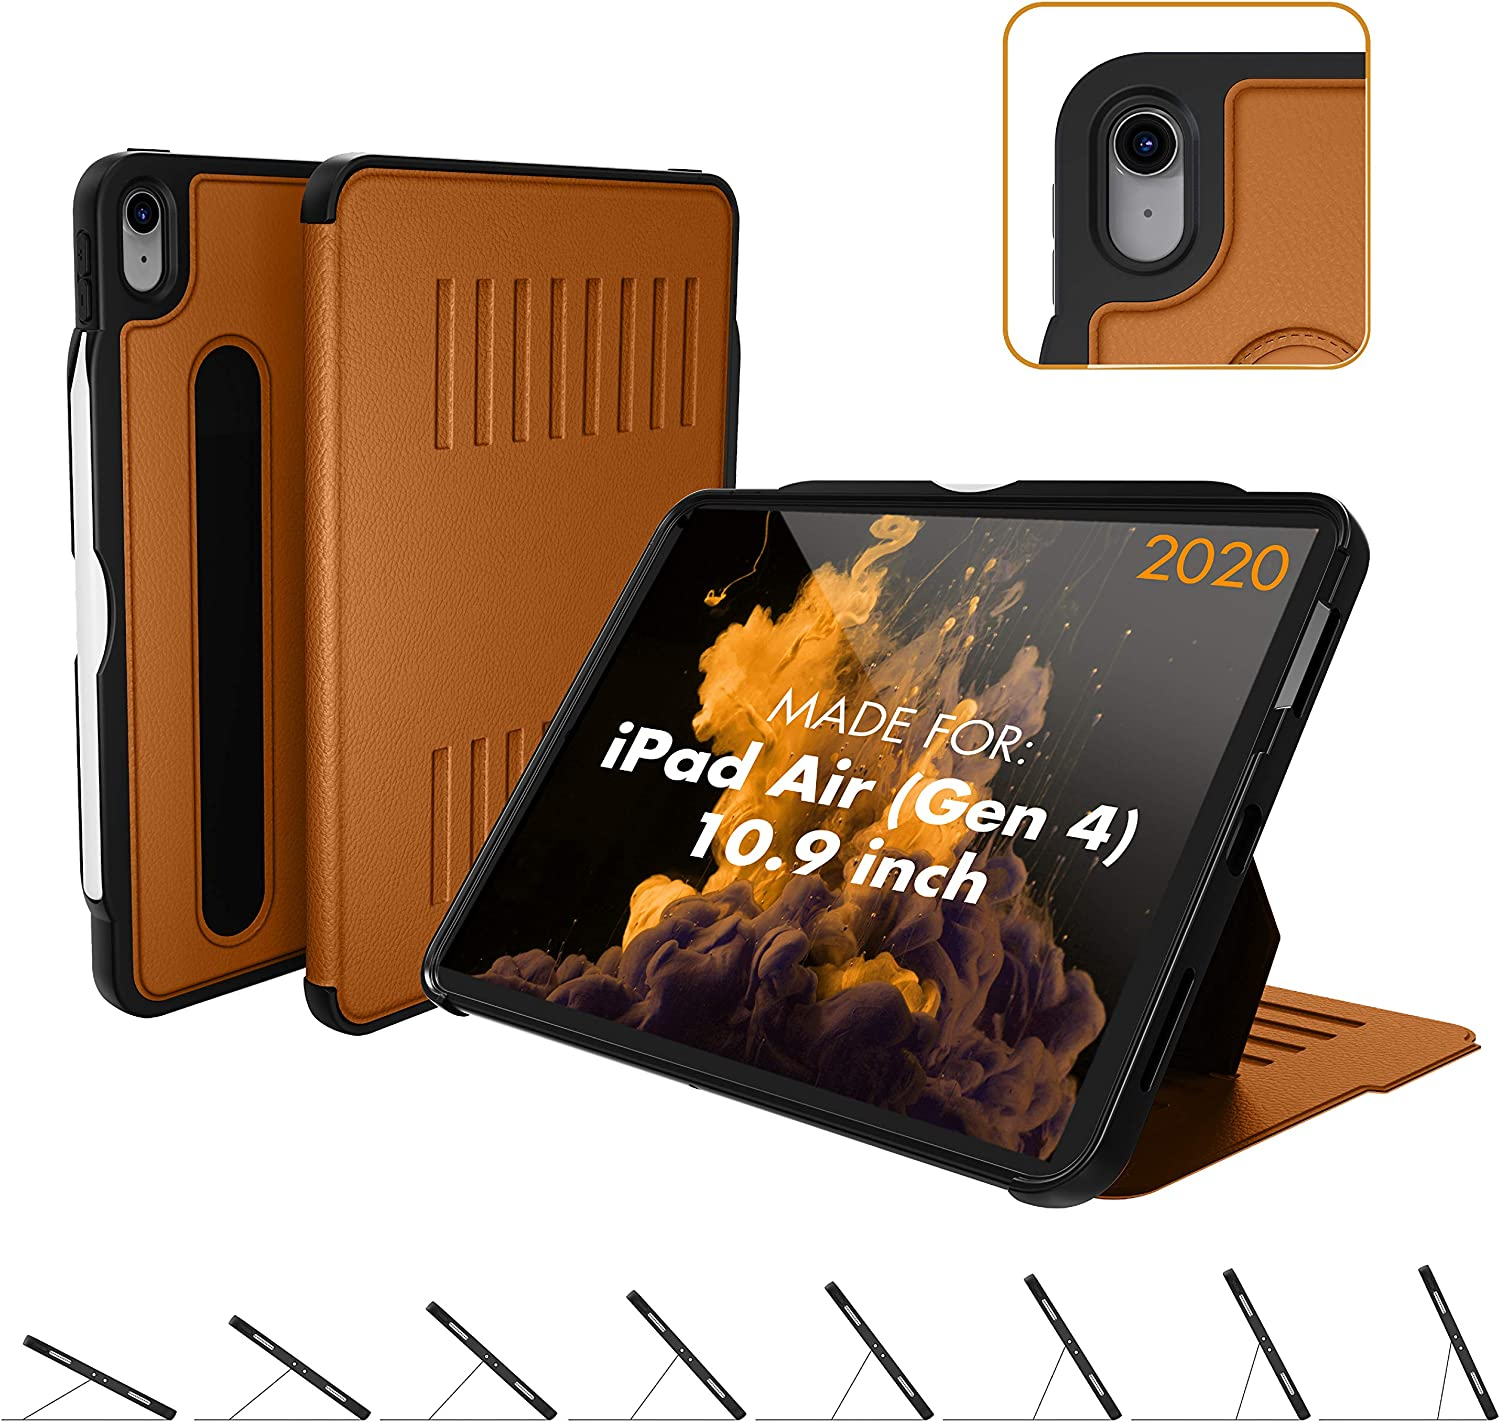 ZUGU CASE (New Model) The Alpha Case for 10.9 Inch iPad Air Gen 4 (2020 ONLY) - Protective, Ultra Thin, Magnetic Stand, Sleep/Wake Cover (Fits Model #s A2072, A2316, A2324, and A2325) - Brown